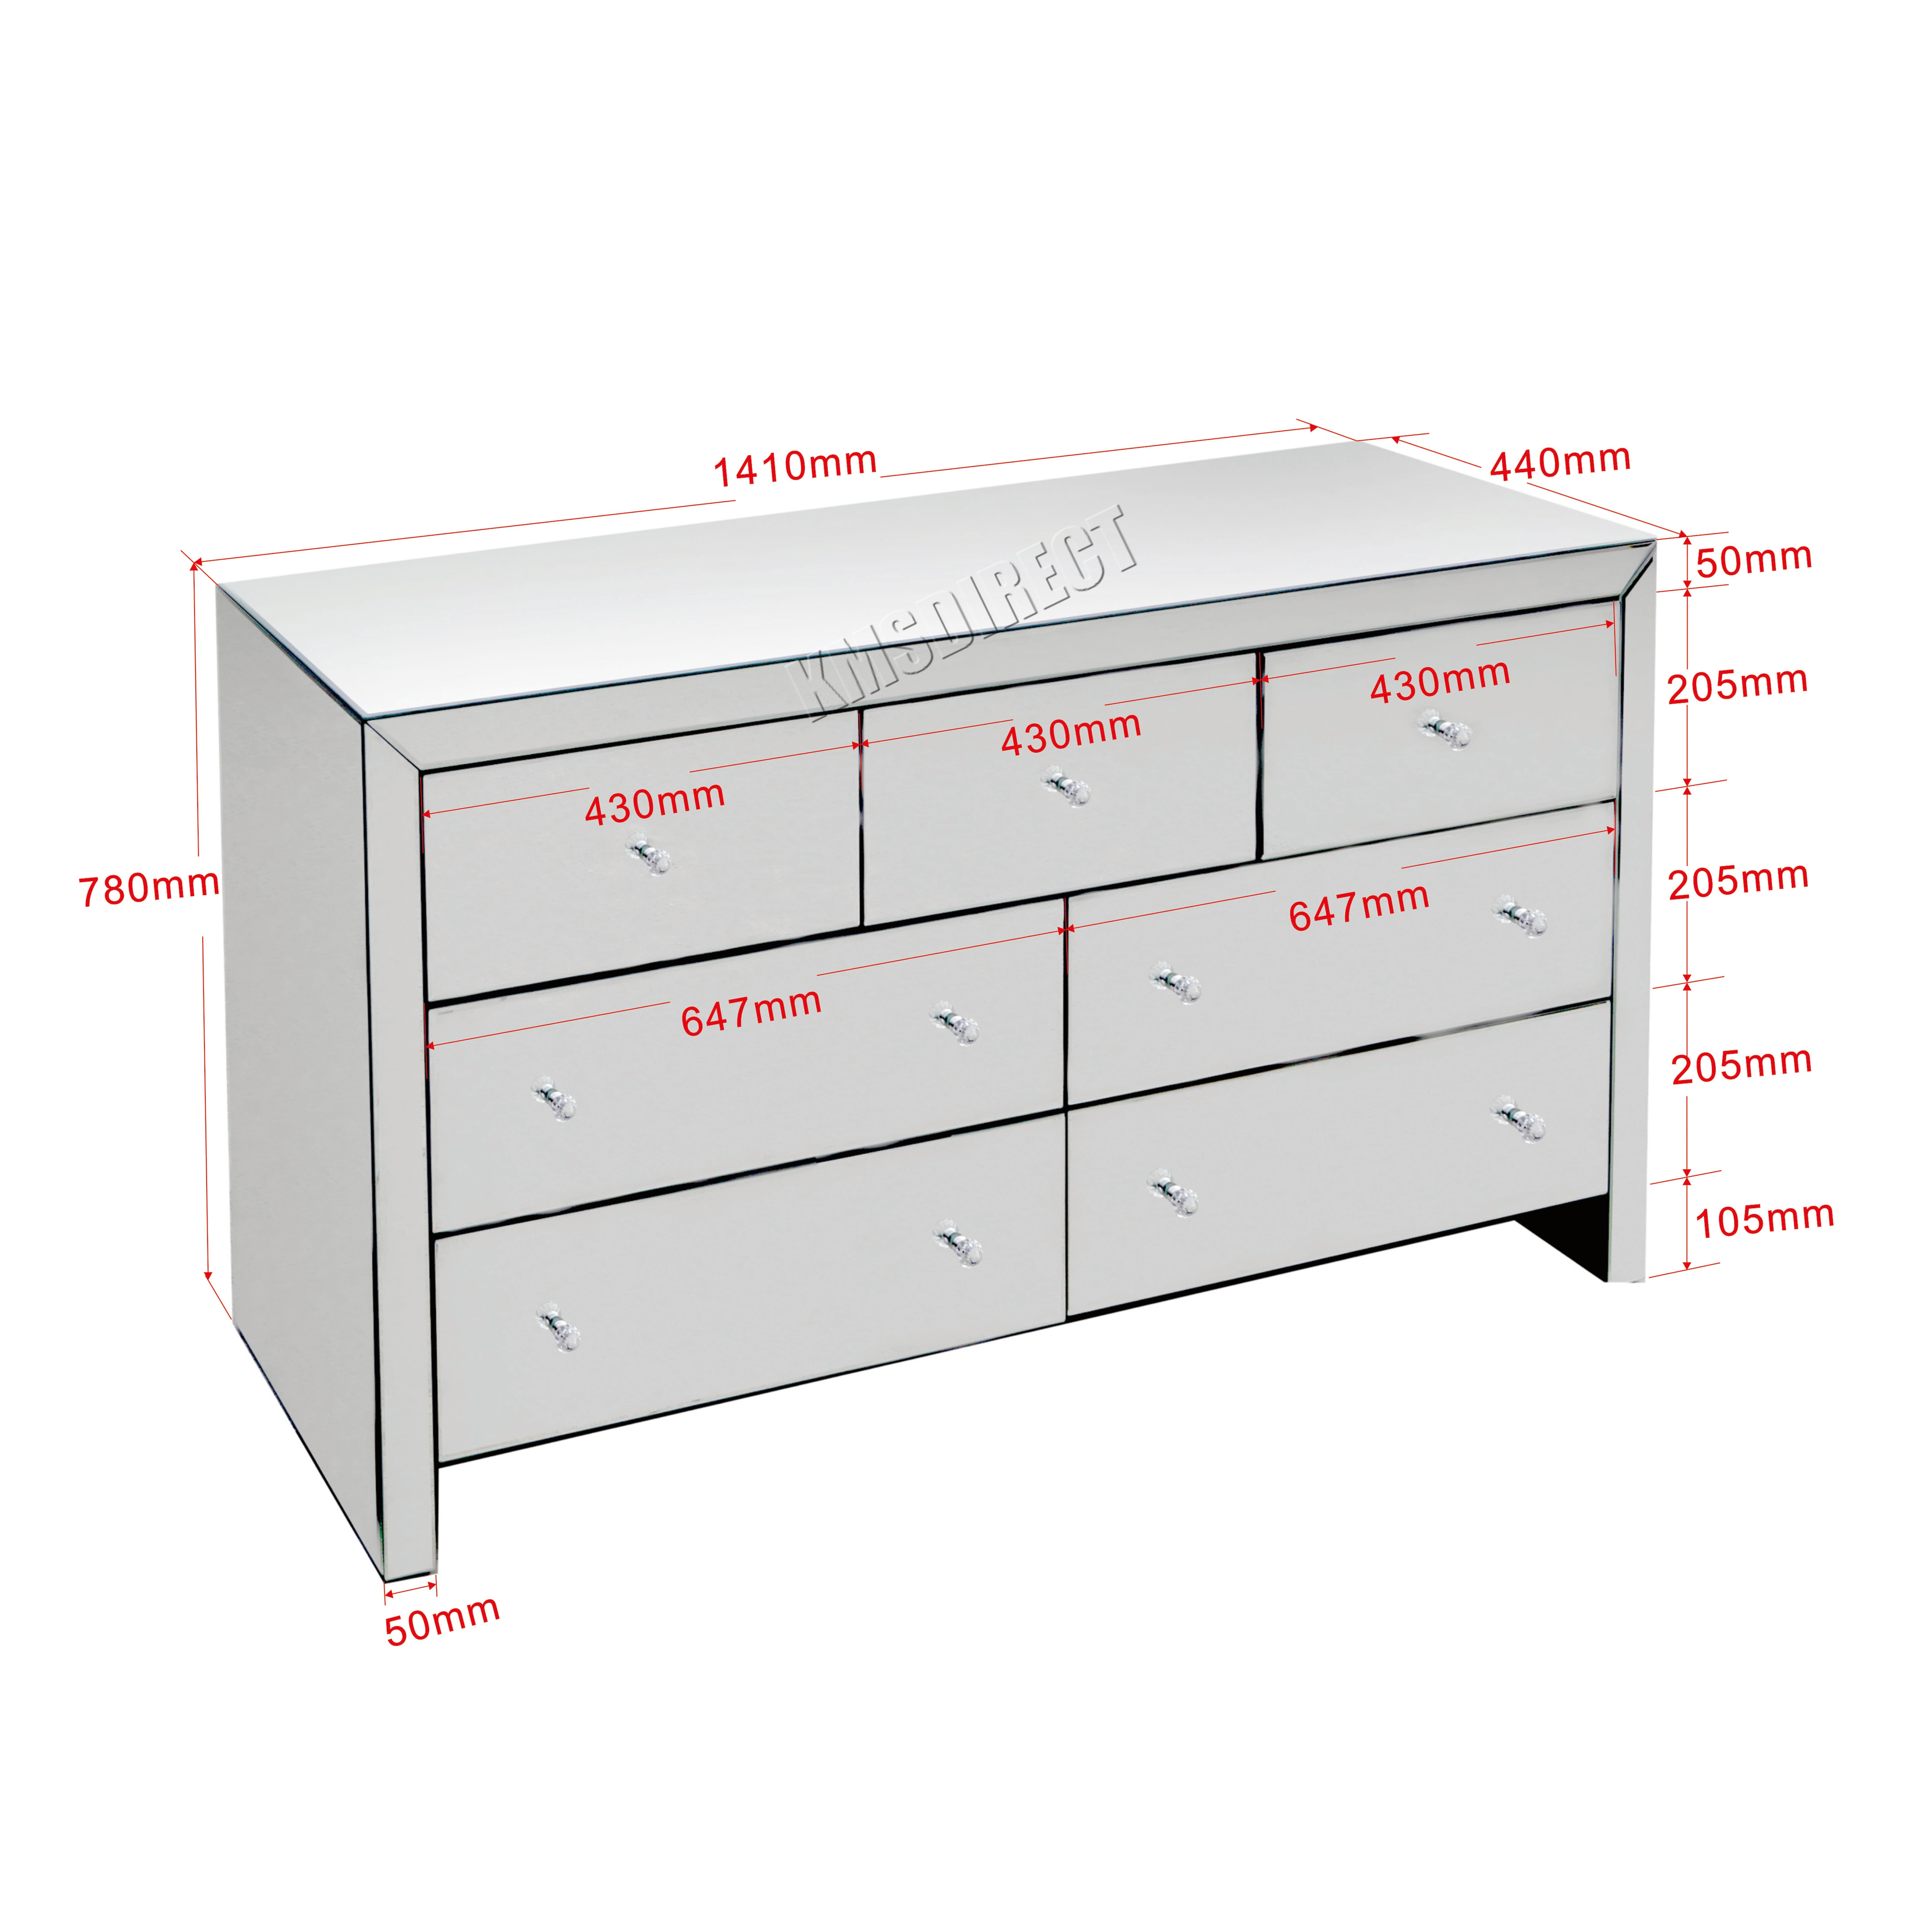 malm ikea out with en gb dressing products table tables cm drawer pull smooth art running white stop drawers